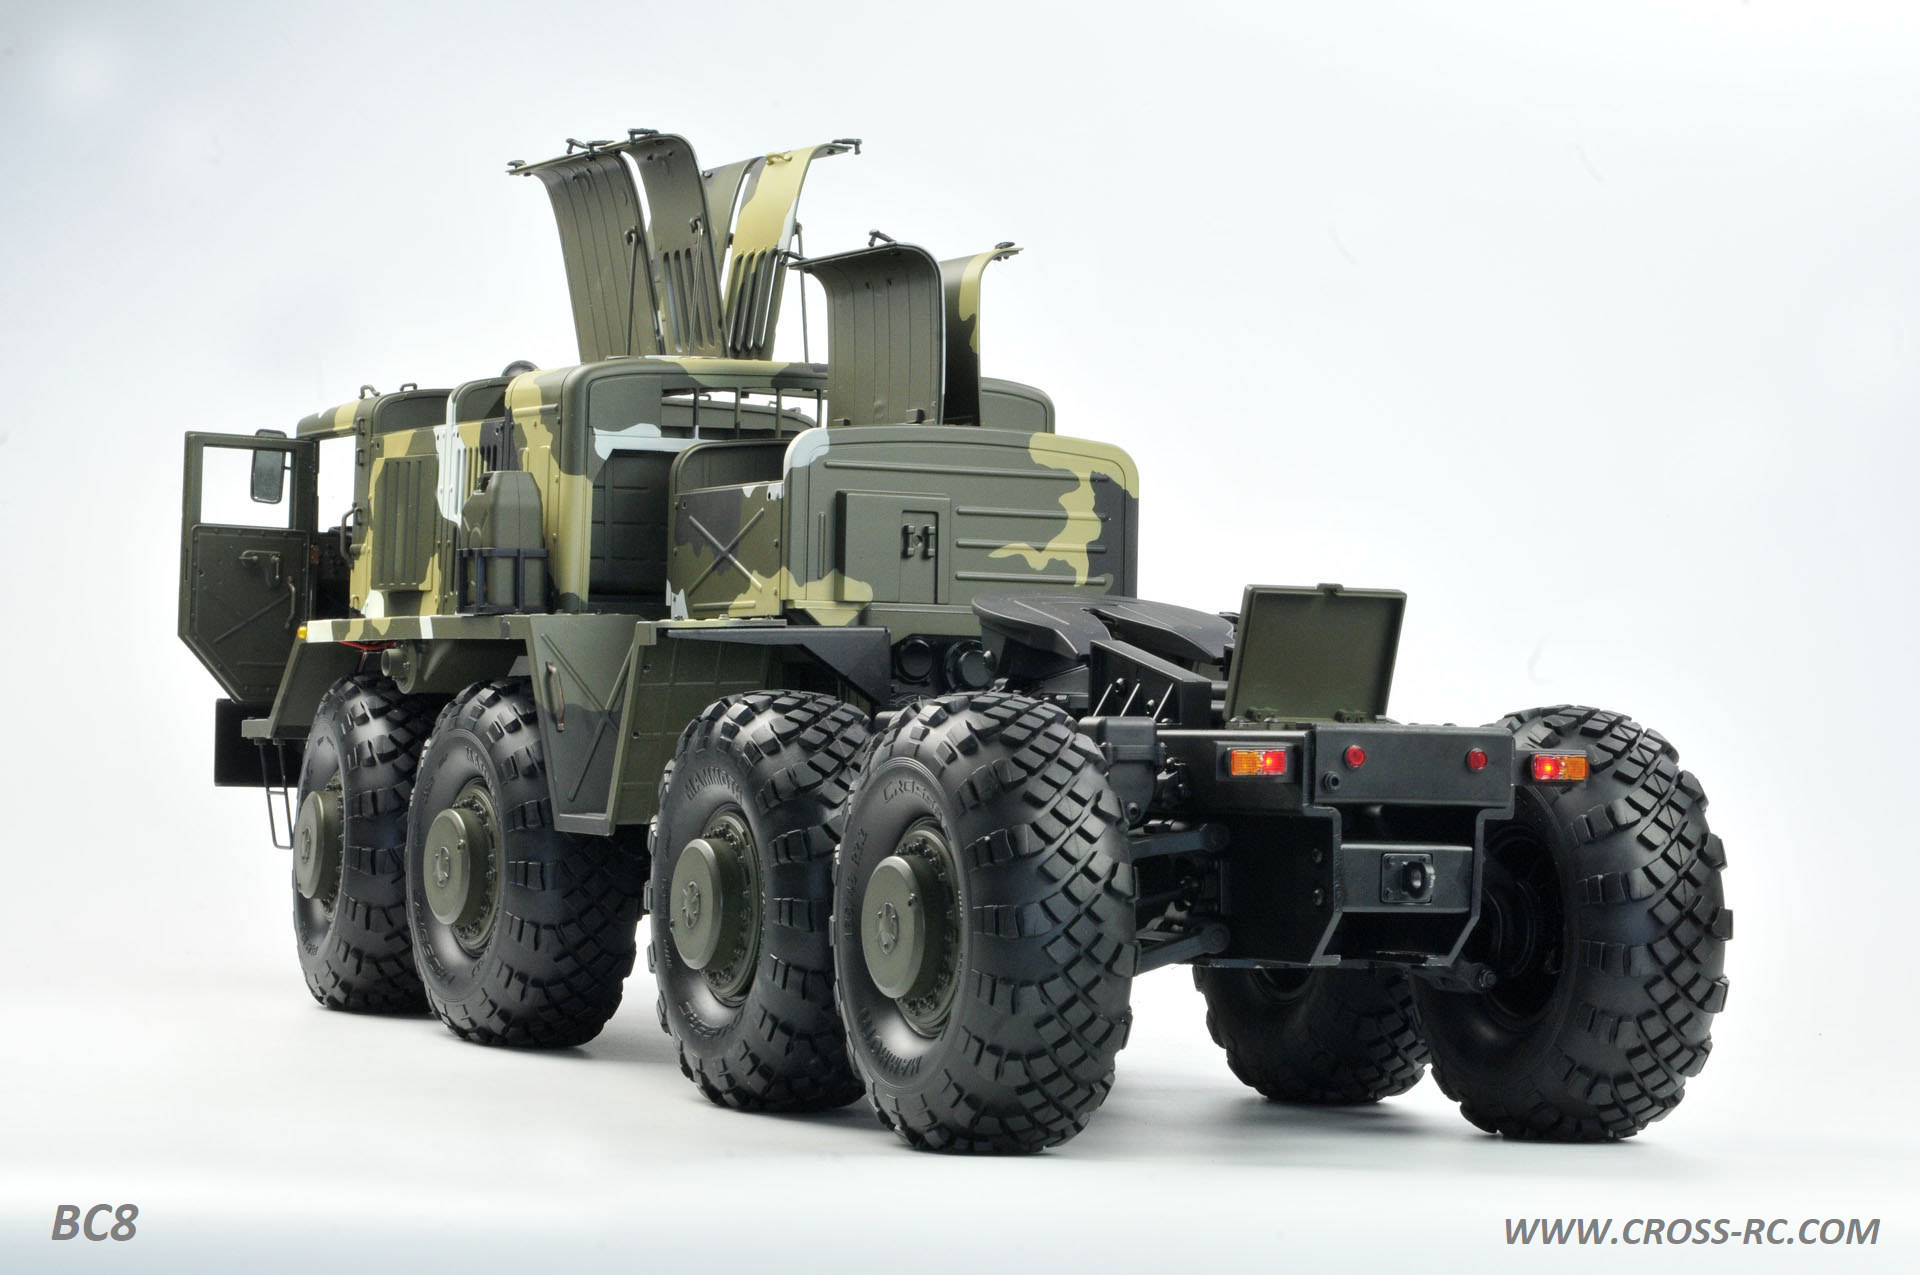 Bc8 Mammoth 1 12 Scale 8x8 Off Road Military Truck Kit